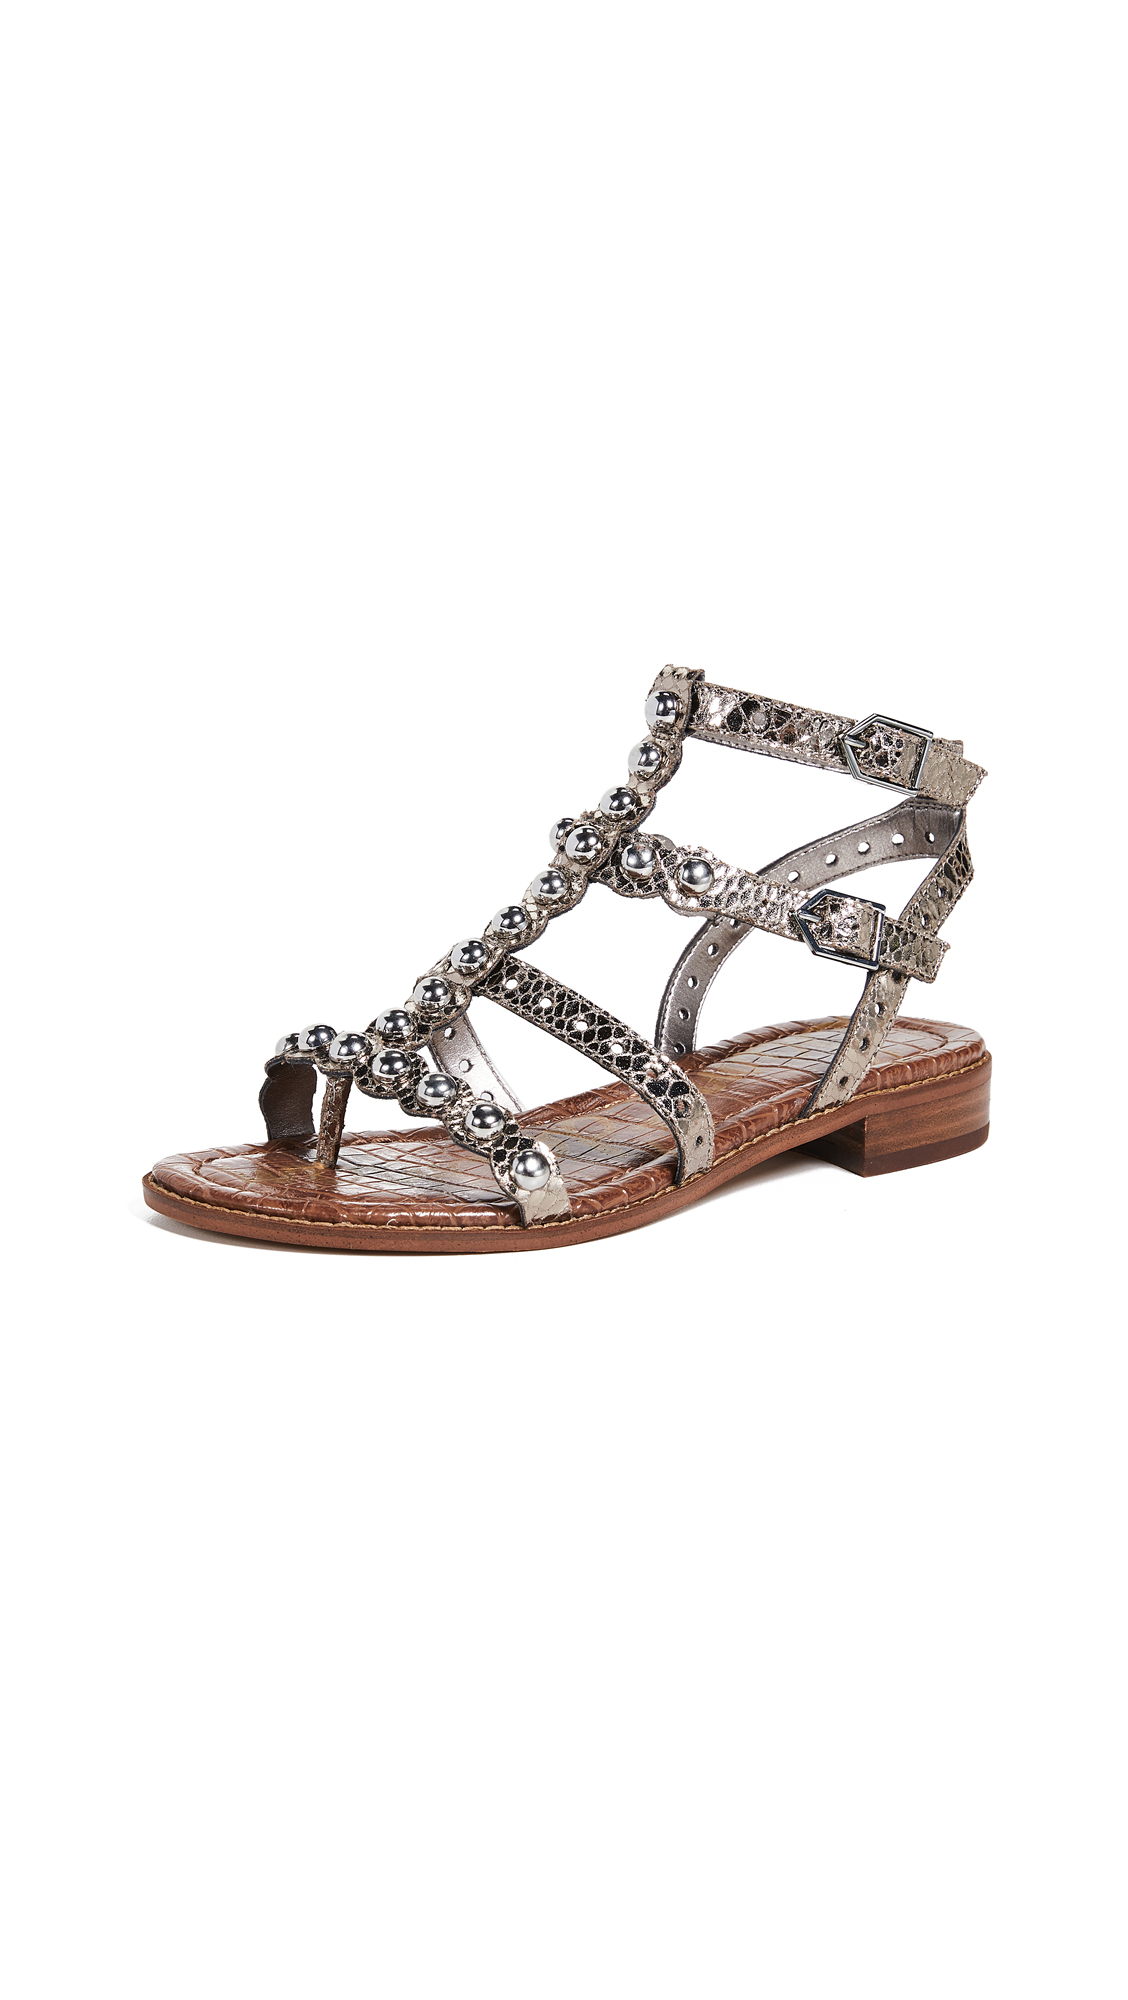 Sam Edelman Elisa Sandals - Pewter